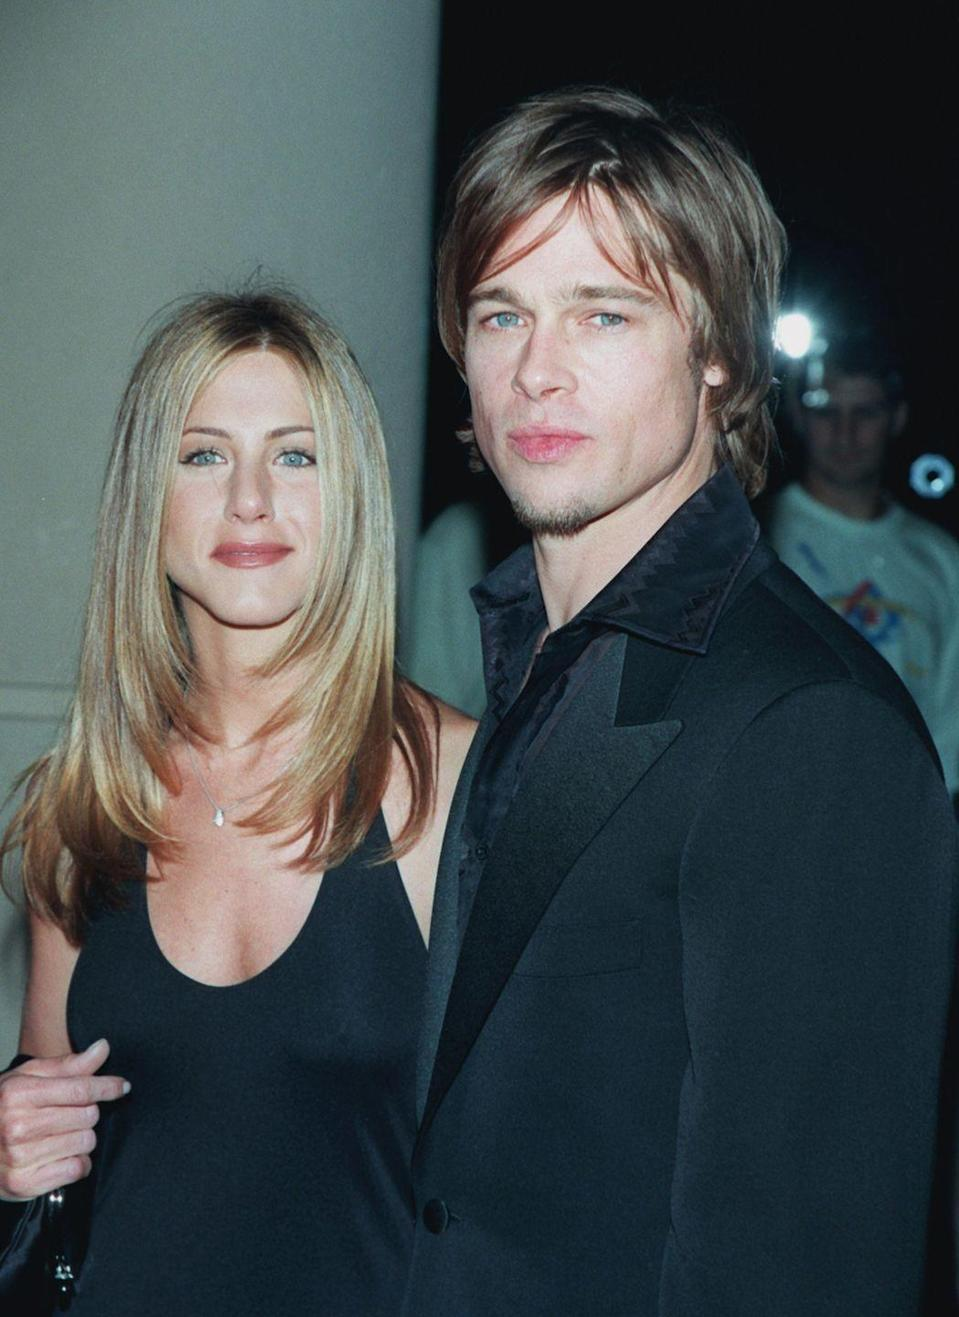 "<p>Hollywood's one-time golden couple, Jennifer Aniston and Brad Pitt, <a href=""http://people.com/archive/cover-story-isnt-it-romantic-vol-54-no-7/"" rel=""nofollow noopener"" target=""_blank"" data-ylk=""slk:married"" class=""link rapid-noclick-resp"">married</a> on July 29, 2000 in Malibu. The wedding reportedly cost $1 million, and Aniston's <em>Friends </em>co-stars were all in attendance. The bride wore a custom gown by Prada. The couple split in 2005. </p>"